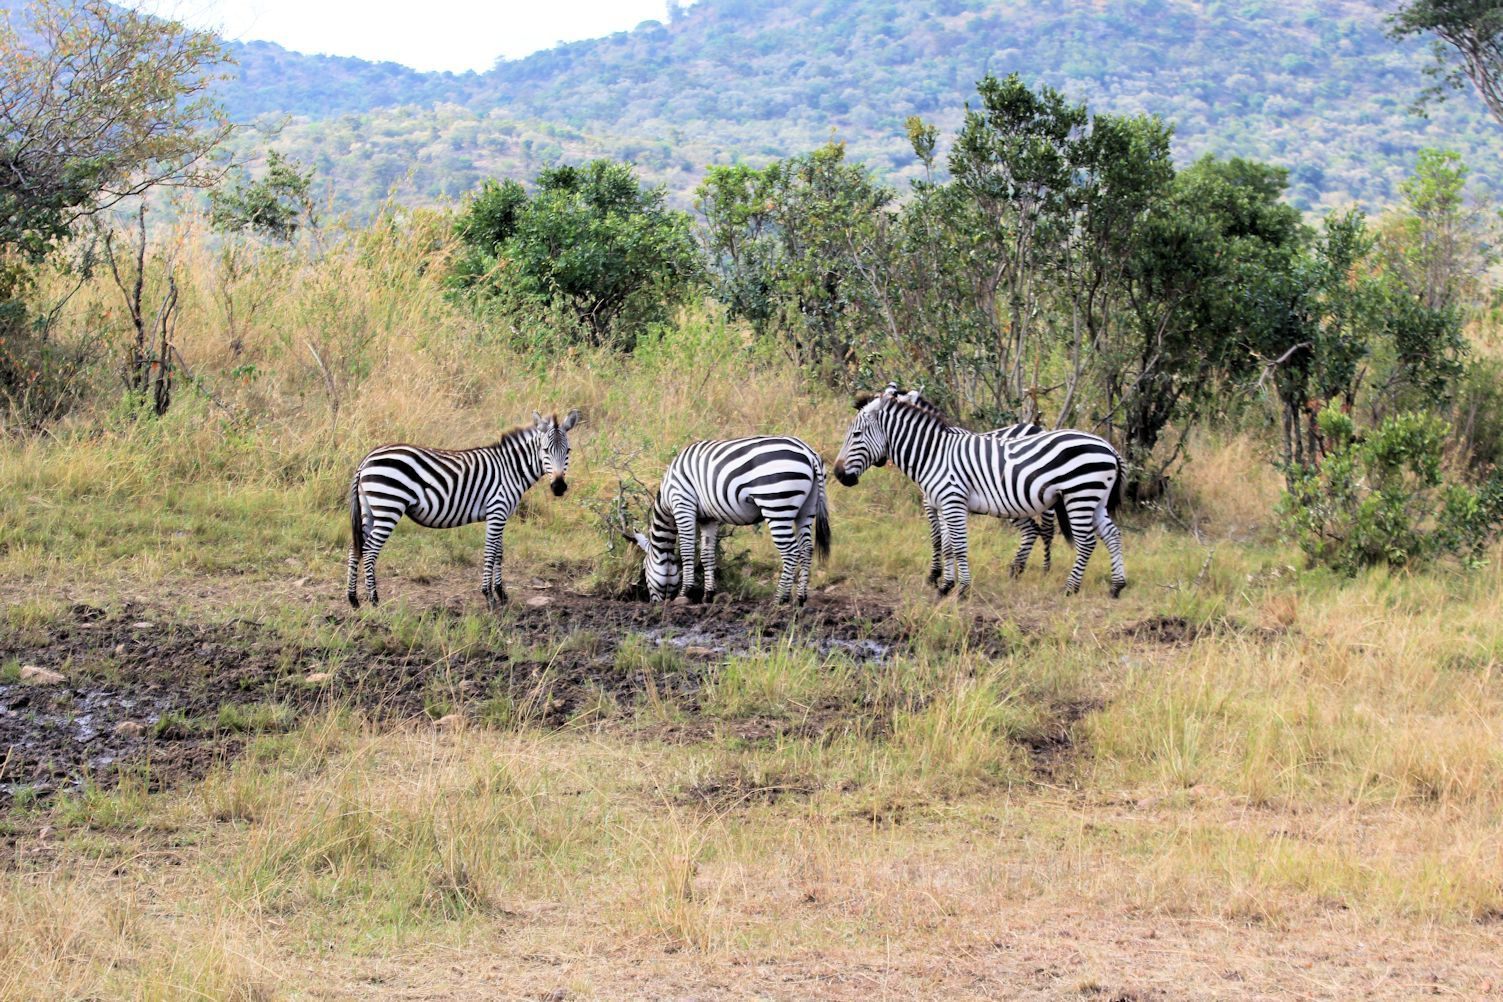 Even zebraz didn't look trivial in Maasai Mara